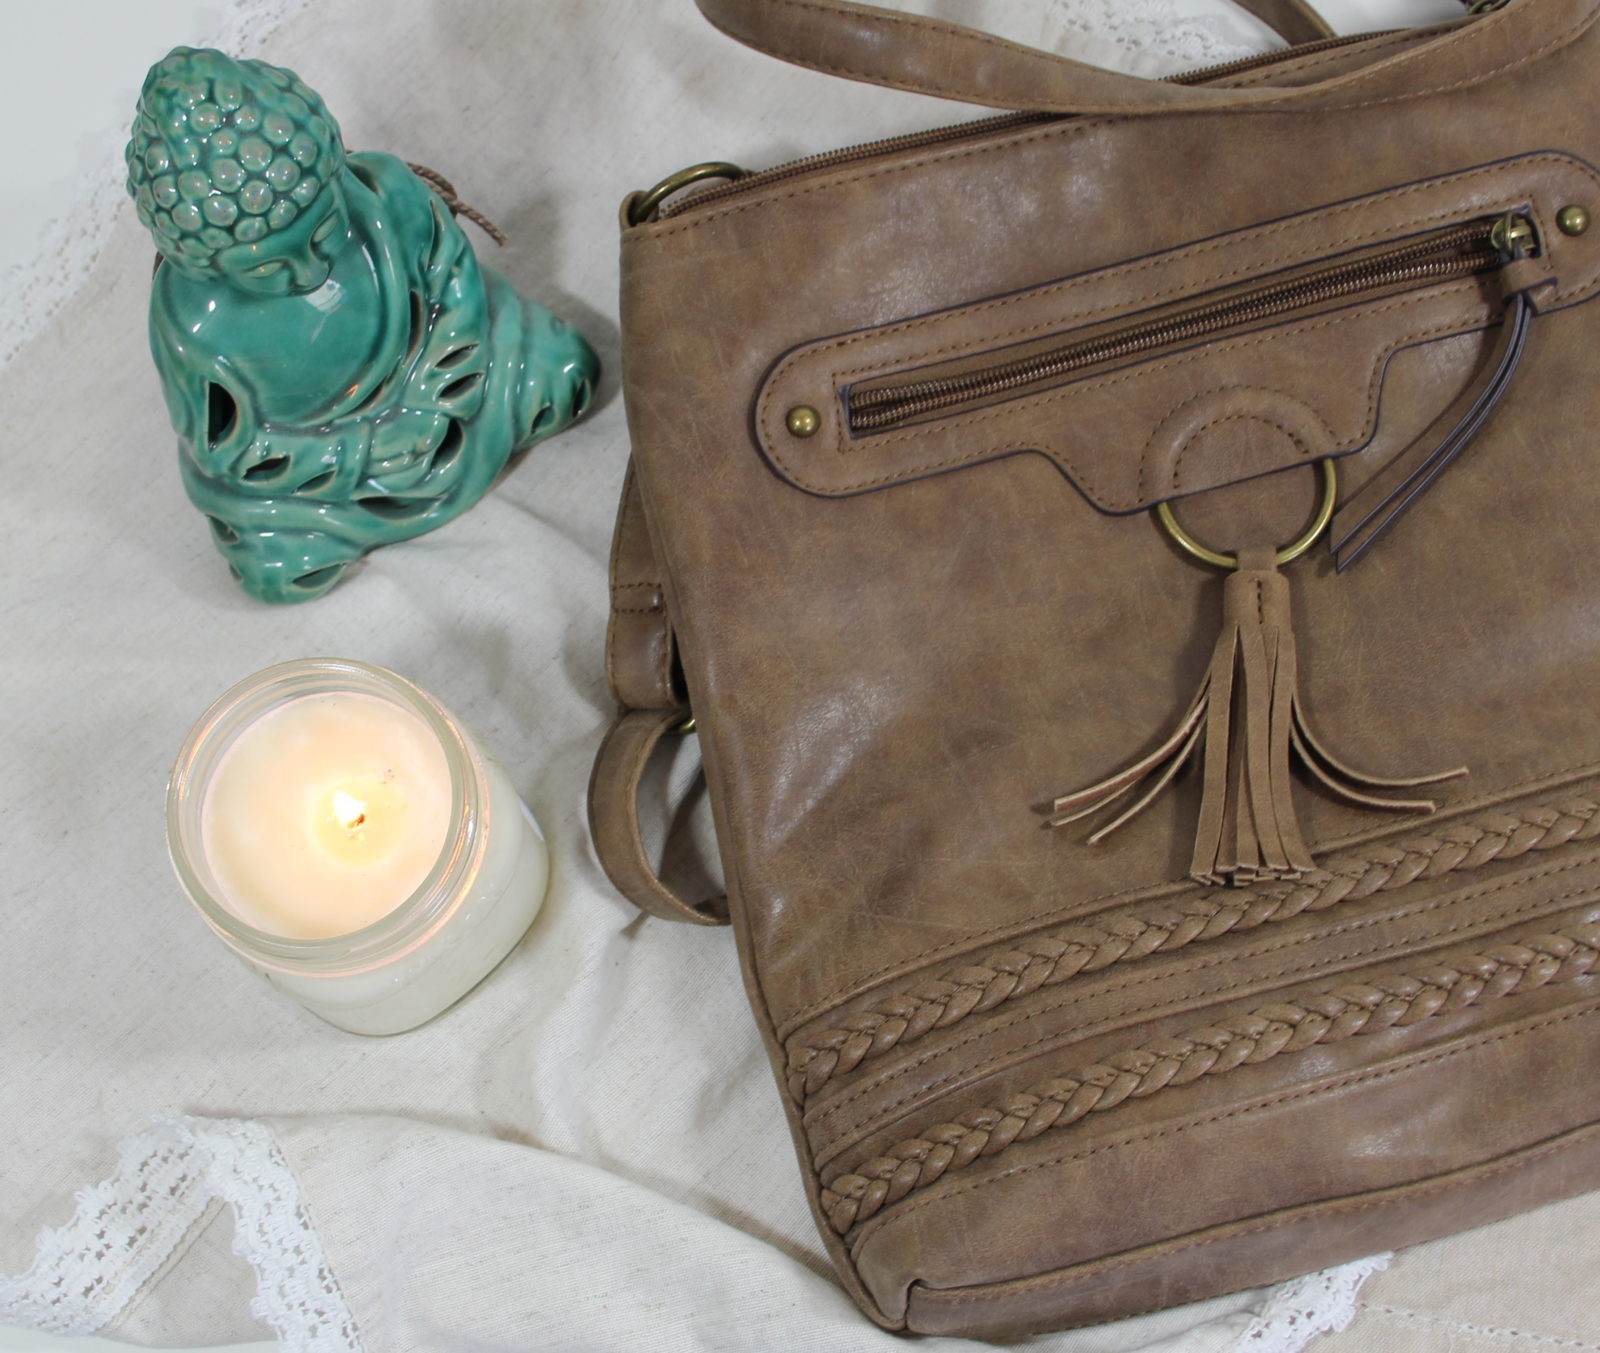 New A&I Handbags at Shopko + Enter to Win a $500 Shopping Spree